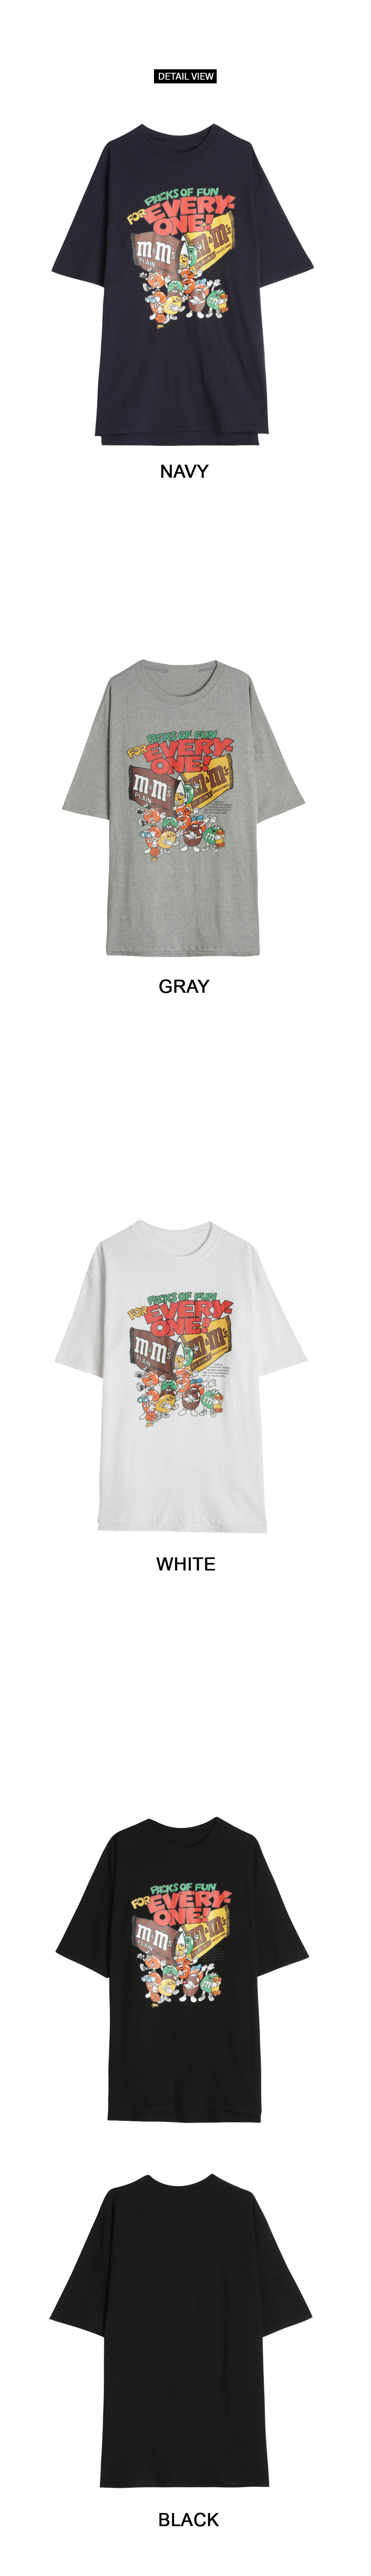 Chocolate Short Sleeve Box Tee